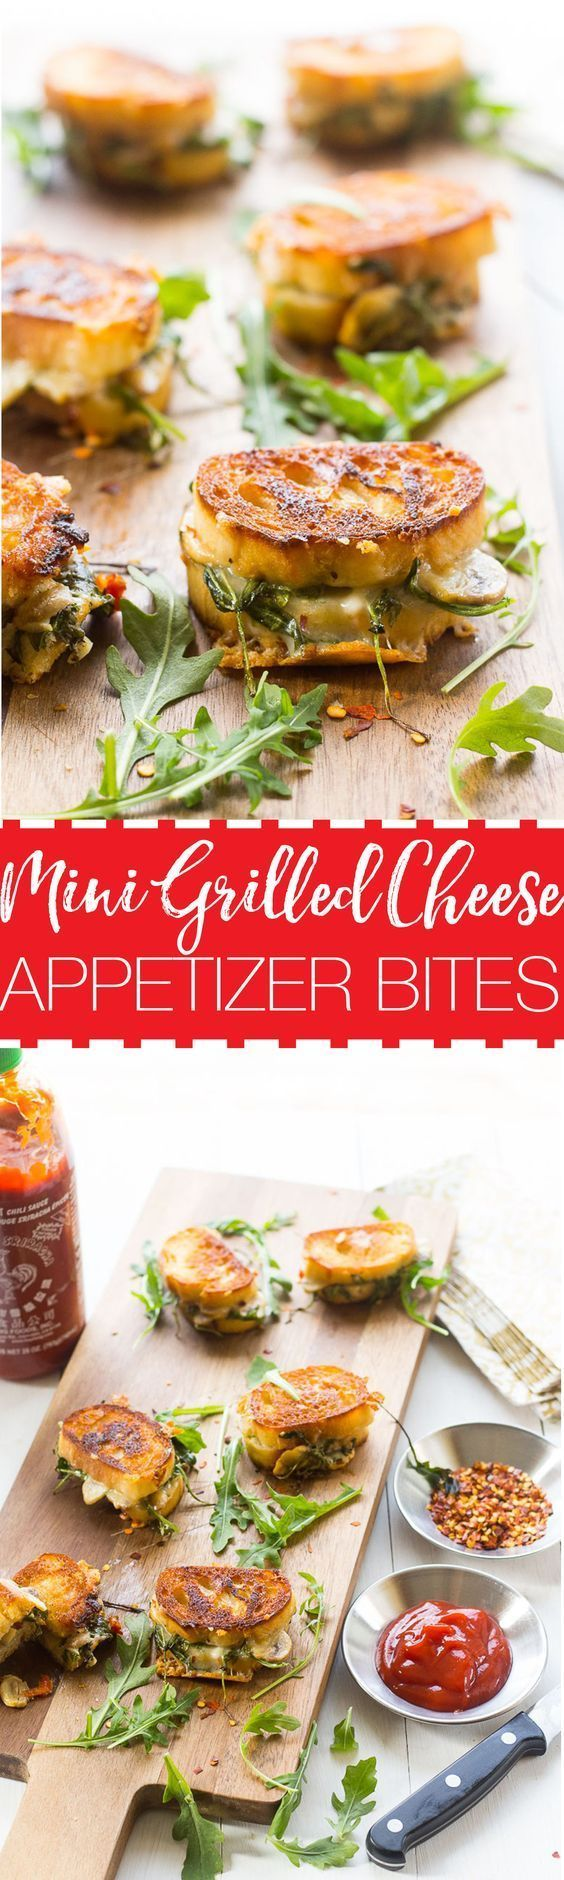 Mini Grilled Cheese Sandwich Appetizers made with aged cheddar, sundried tomatoes, mushrooms and arugula!